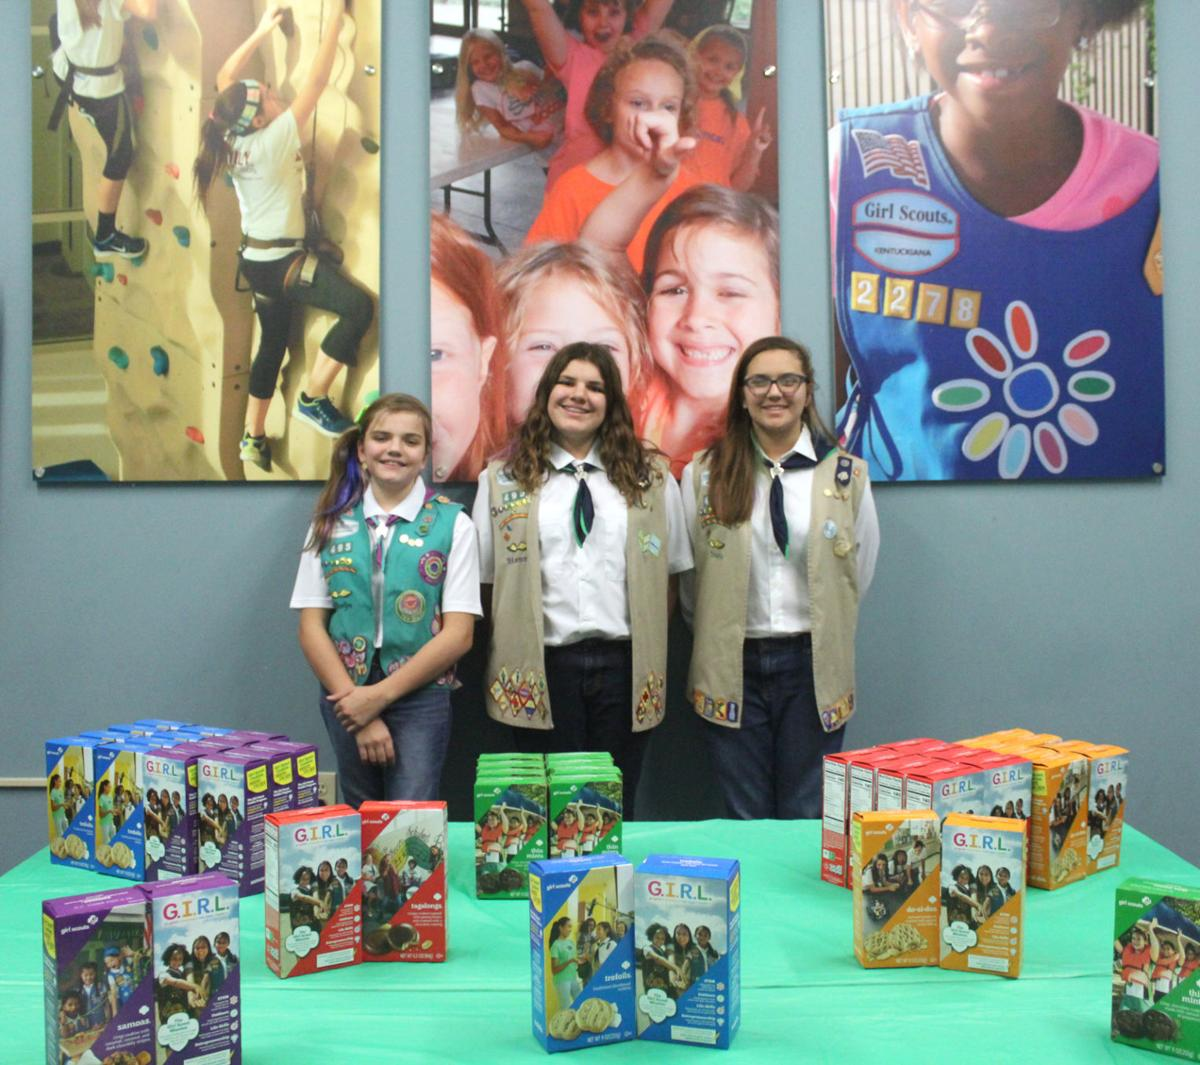 Cookie season helps empower local Scouts